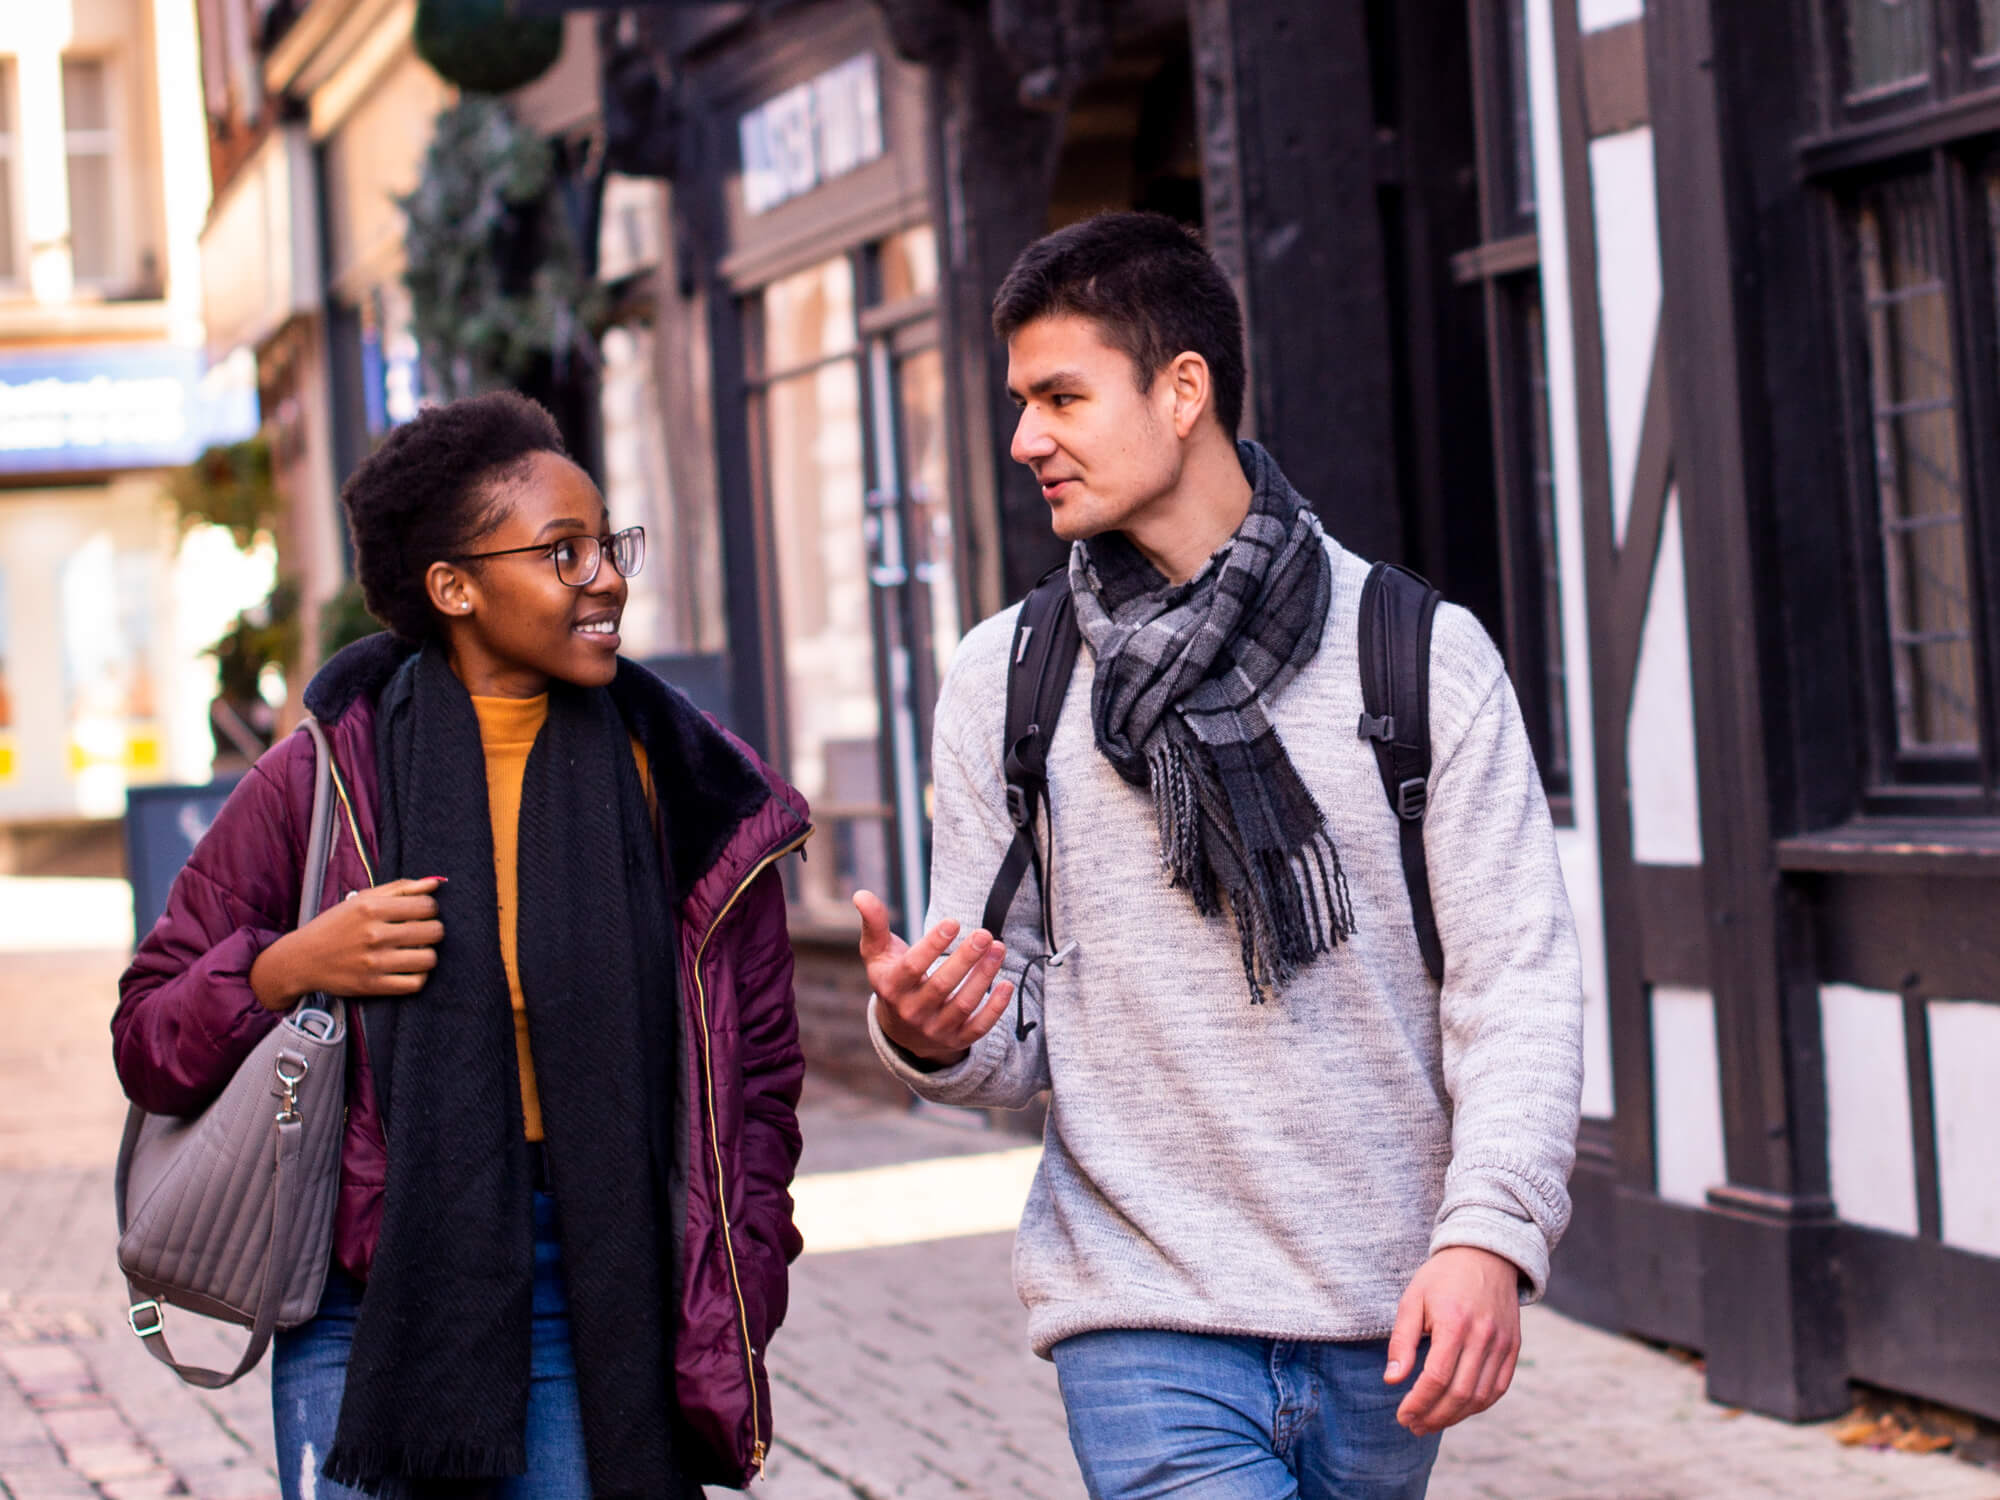 Two Students walking through derby together